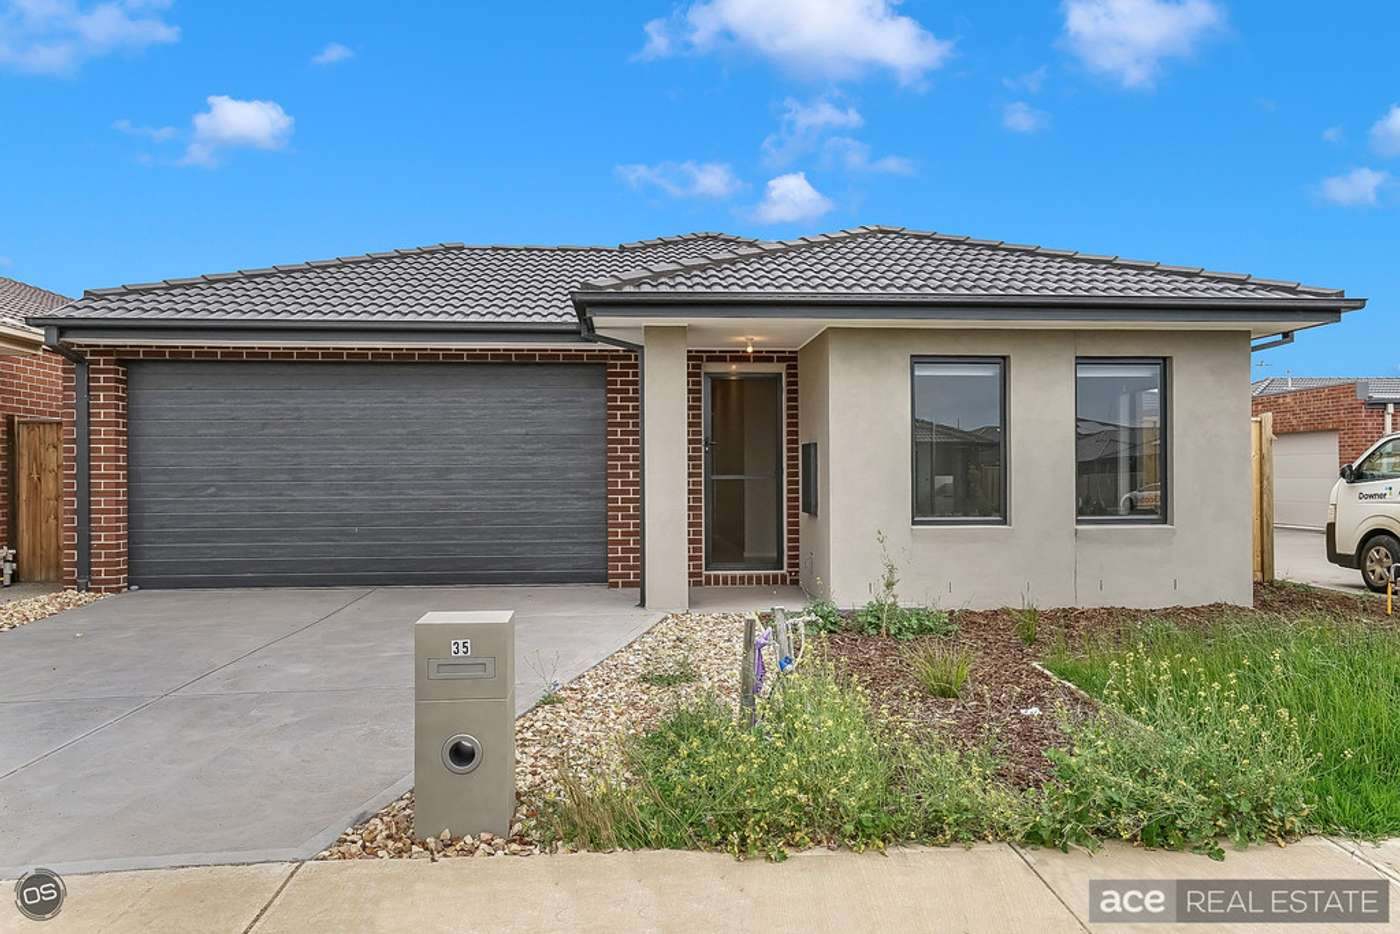 Main view of Homely house listing, 35 Grima Crescent, Wyndham Vale VIC 3024